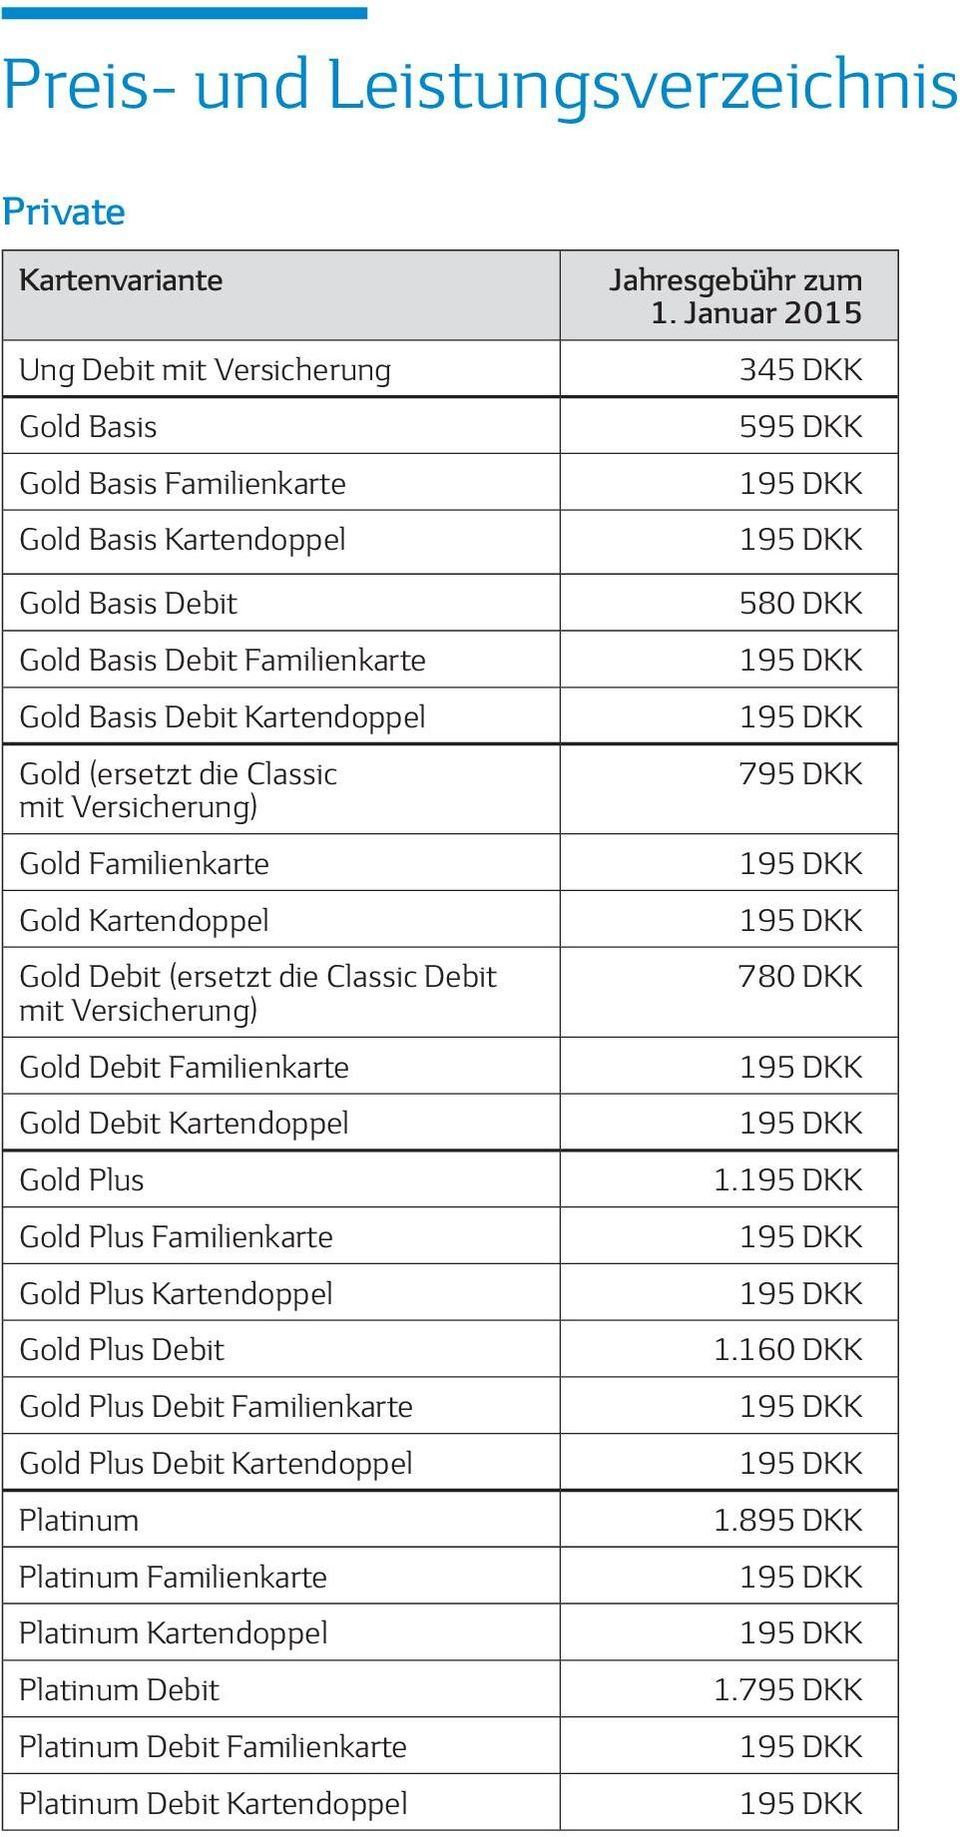 Gold Debit Kartendoppel Gold Plus Gold Plus Familienkarte Gold Plus Kartendoppel Gold Plus Debit Gold Plus Debit Familienkarte Gold Plus Debit Kartendoppel Platinum Platinum Familienkarte